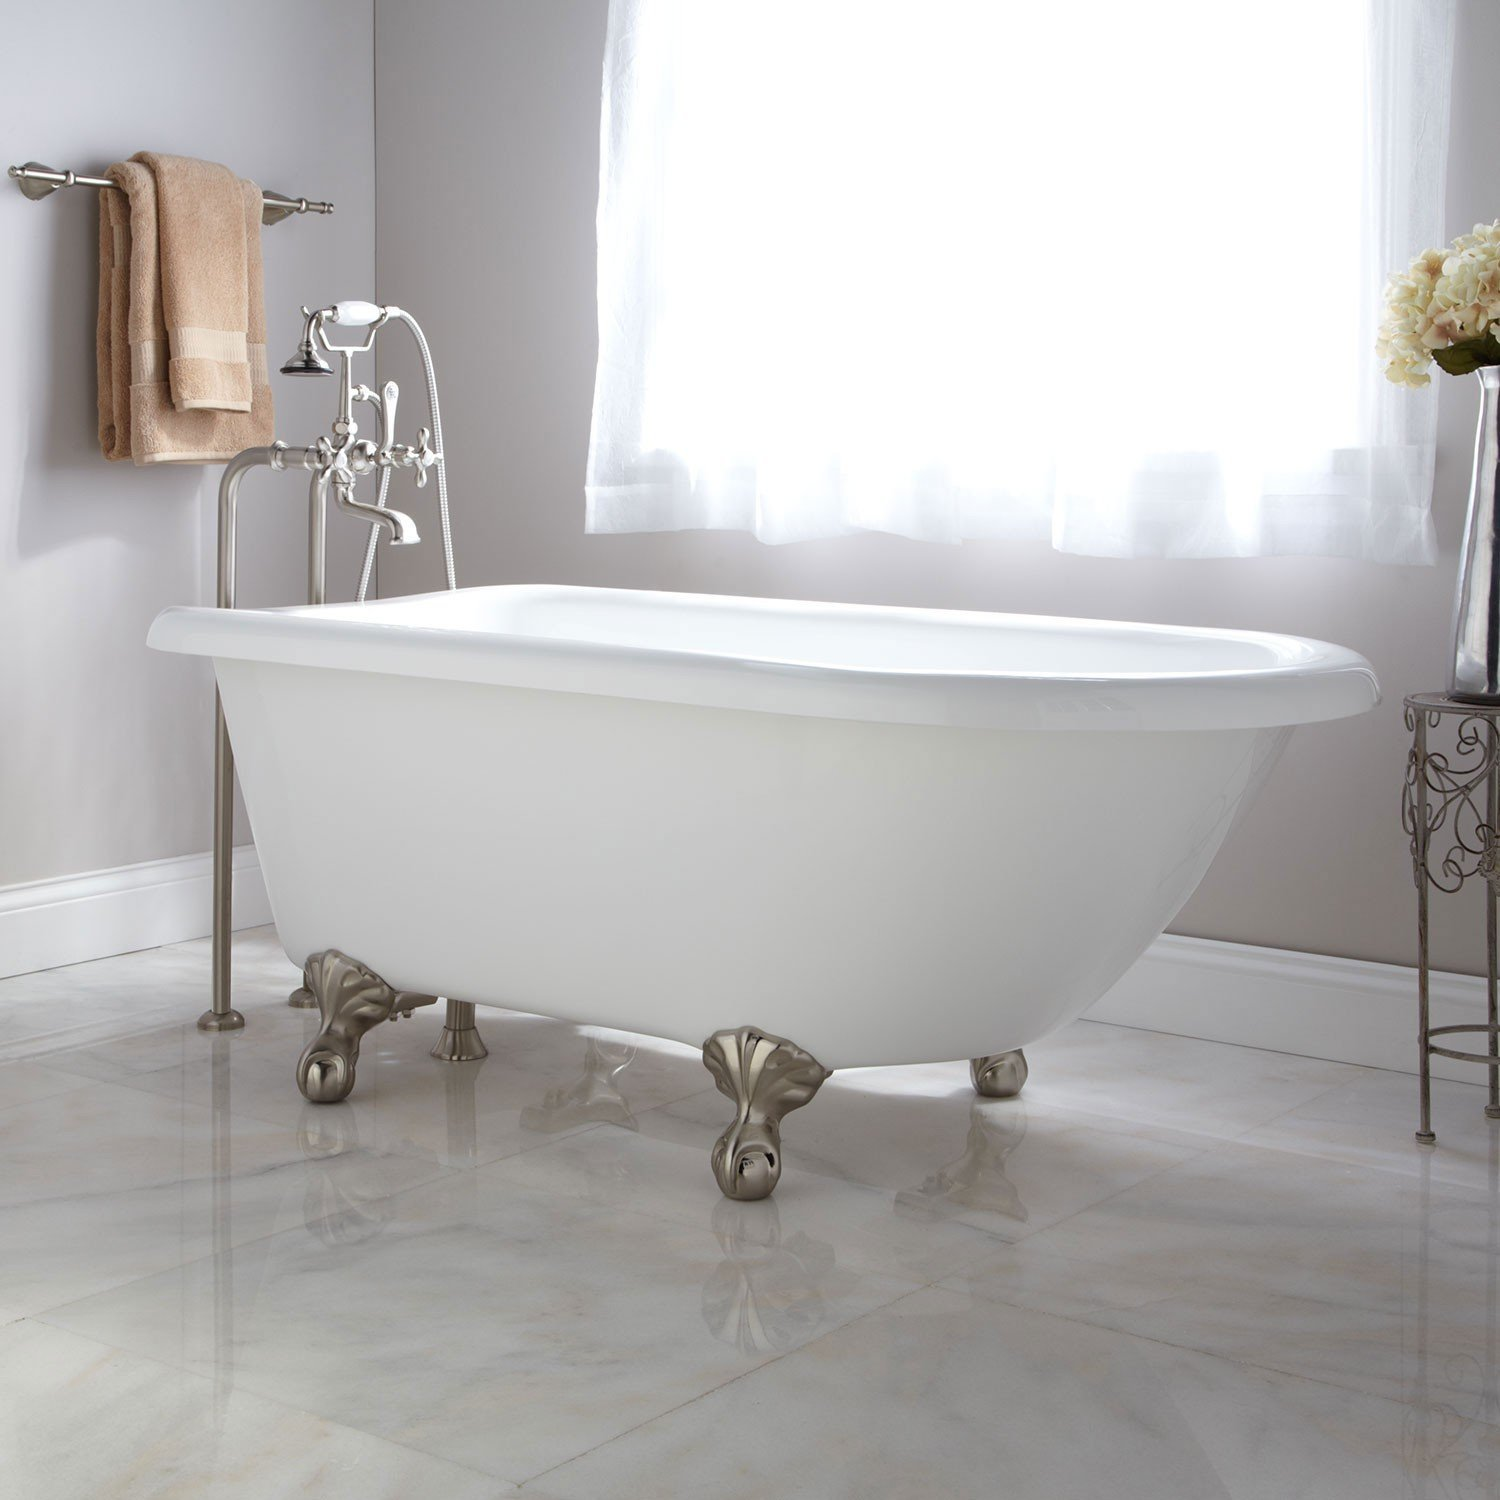 Naiture Acrylic Clawfoot Tub From SH. Small Bathtub Ideas